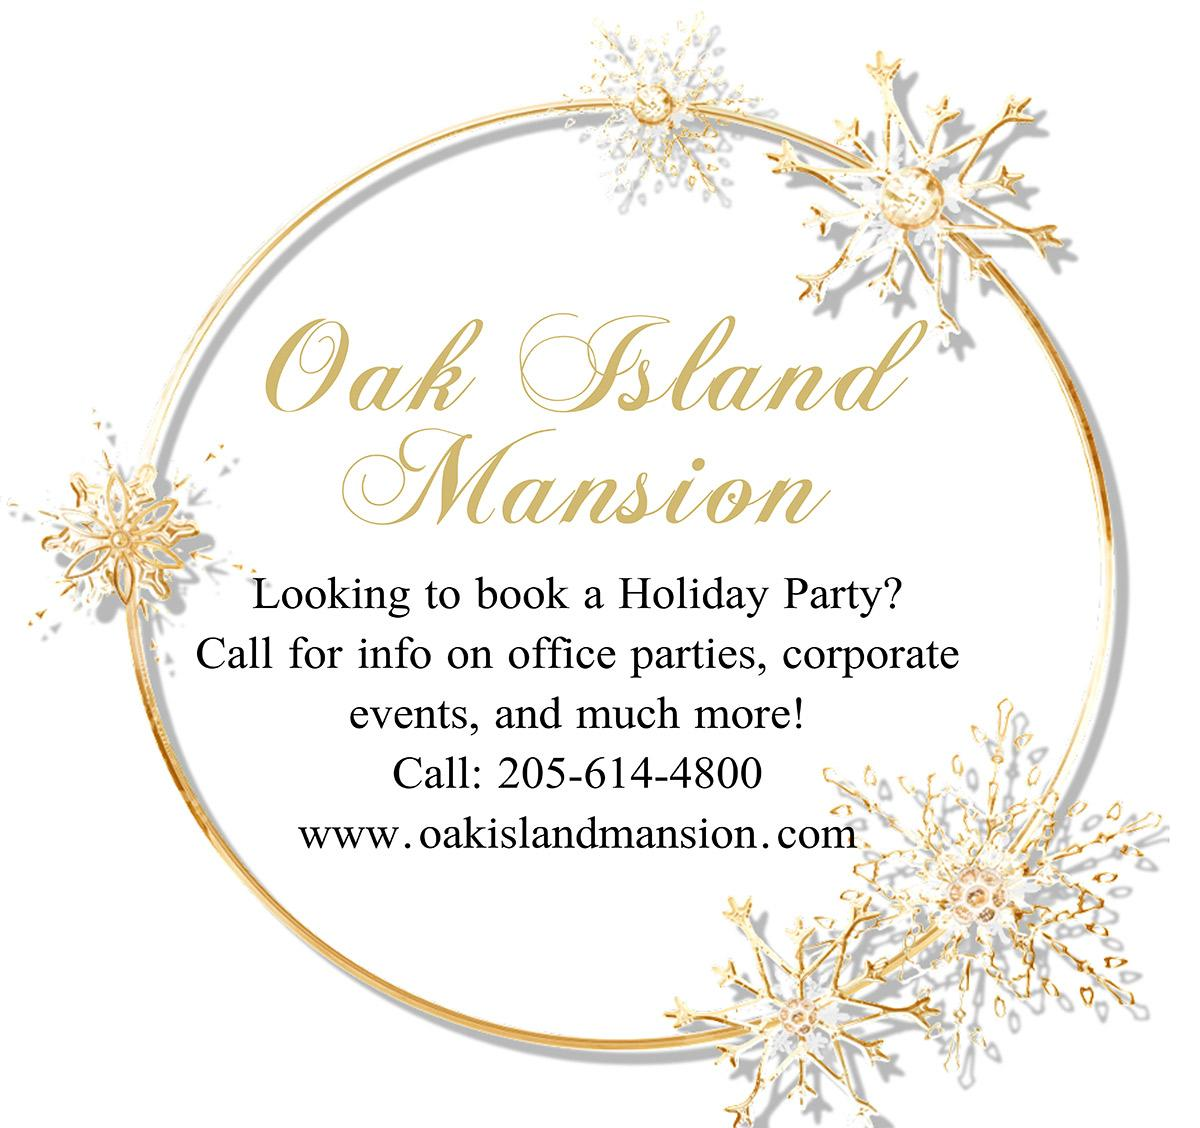 Book your holiday party at Oak Island